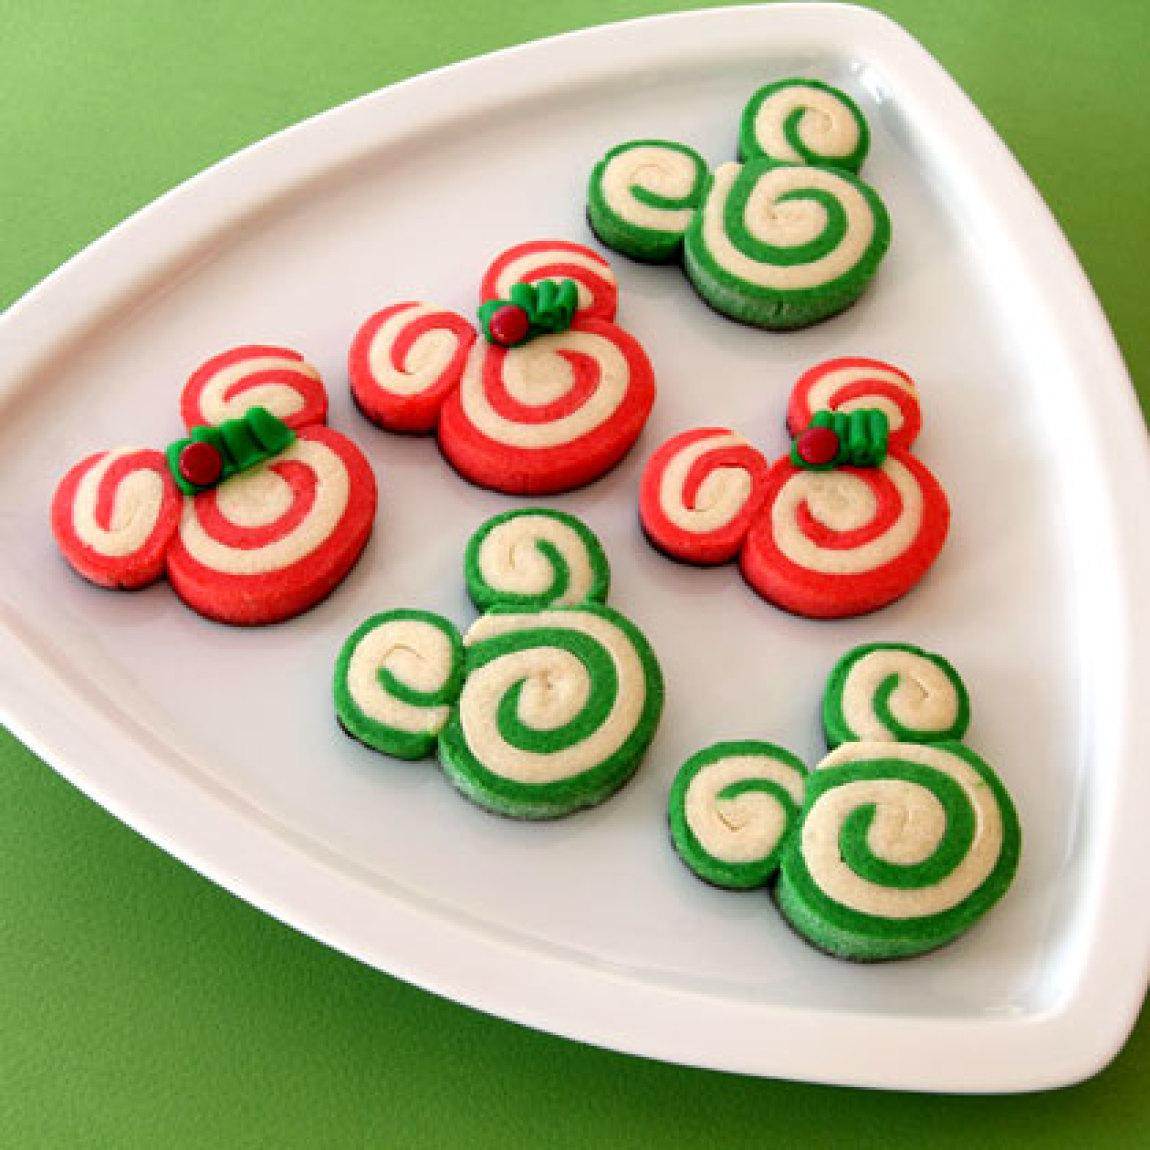 Mickey amp minnie peppermint swirl cookies recipe just a pinch recipes